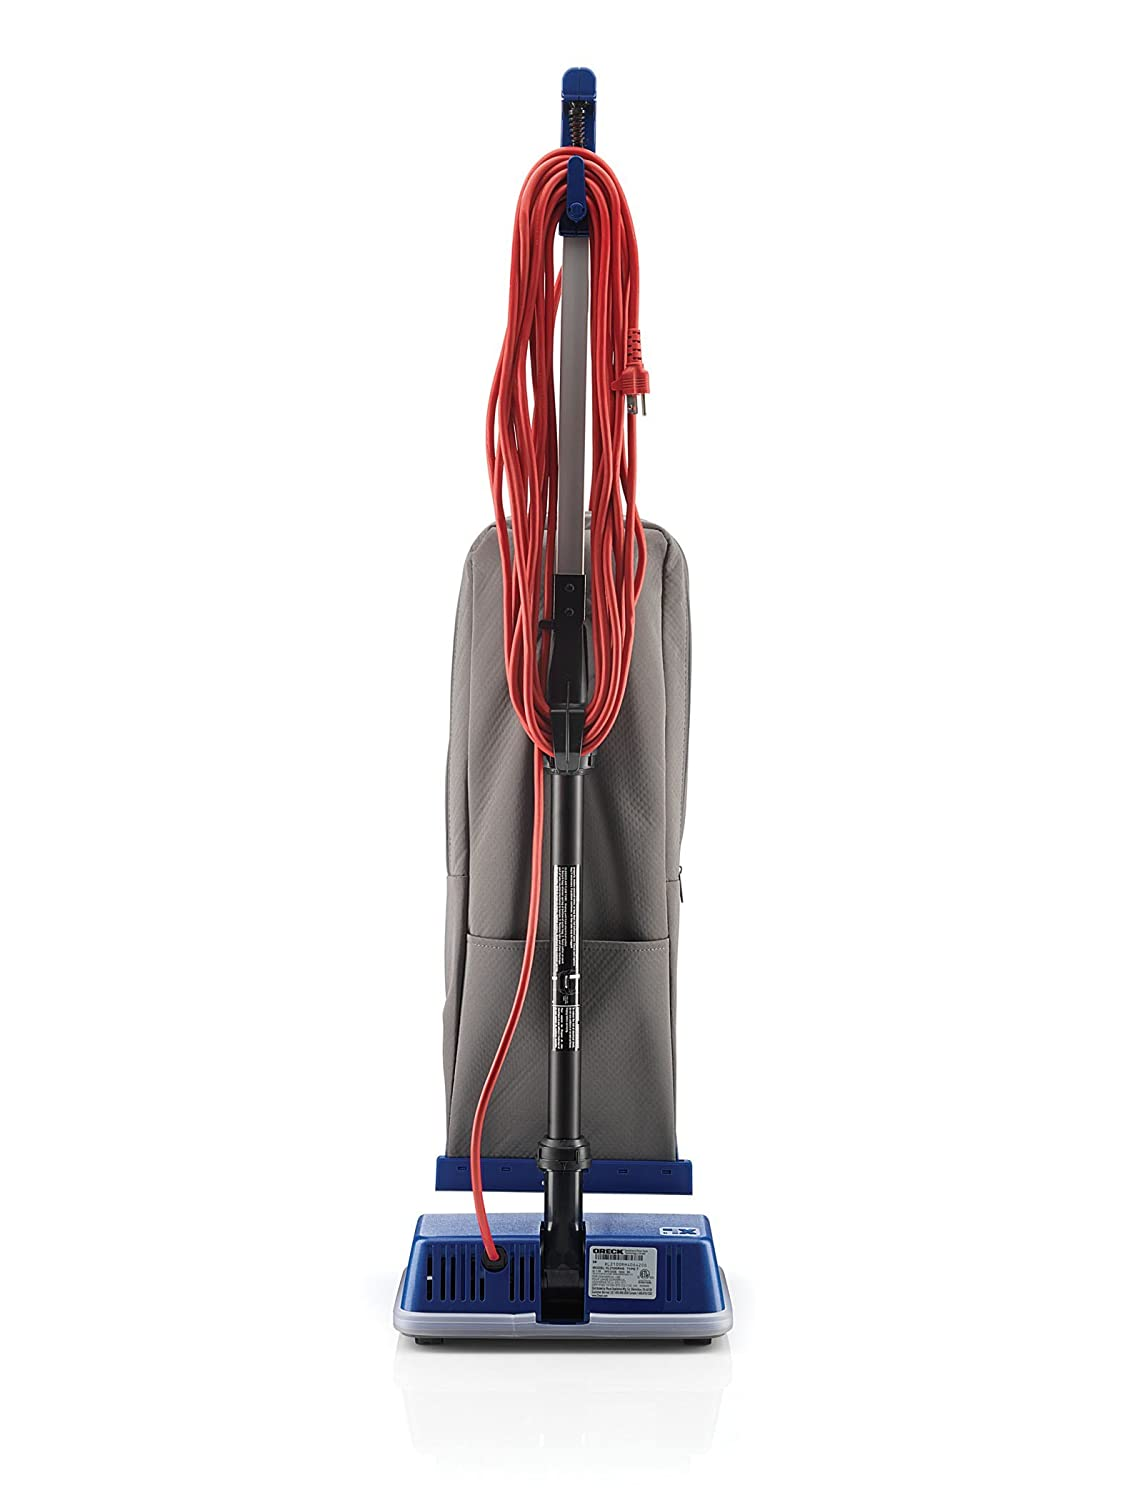 oreck commercial xl2100rhs xl commercial upright vacuum 120 v grayblue 12 12 x 9 14 x 47 34 household vacuums amazoncom industrial scientific - Top 5 Vacuum Cleaners